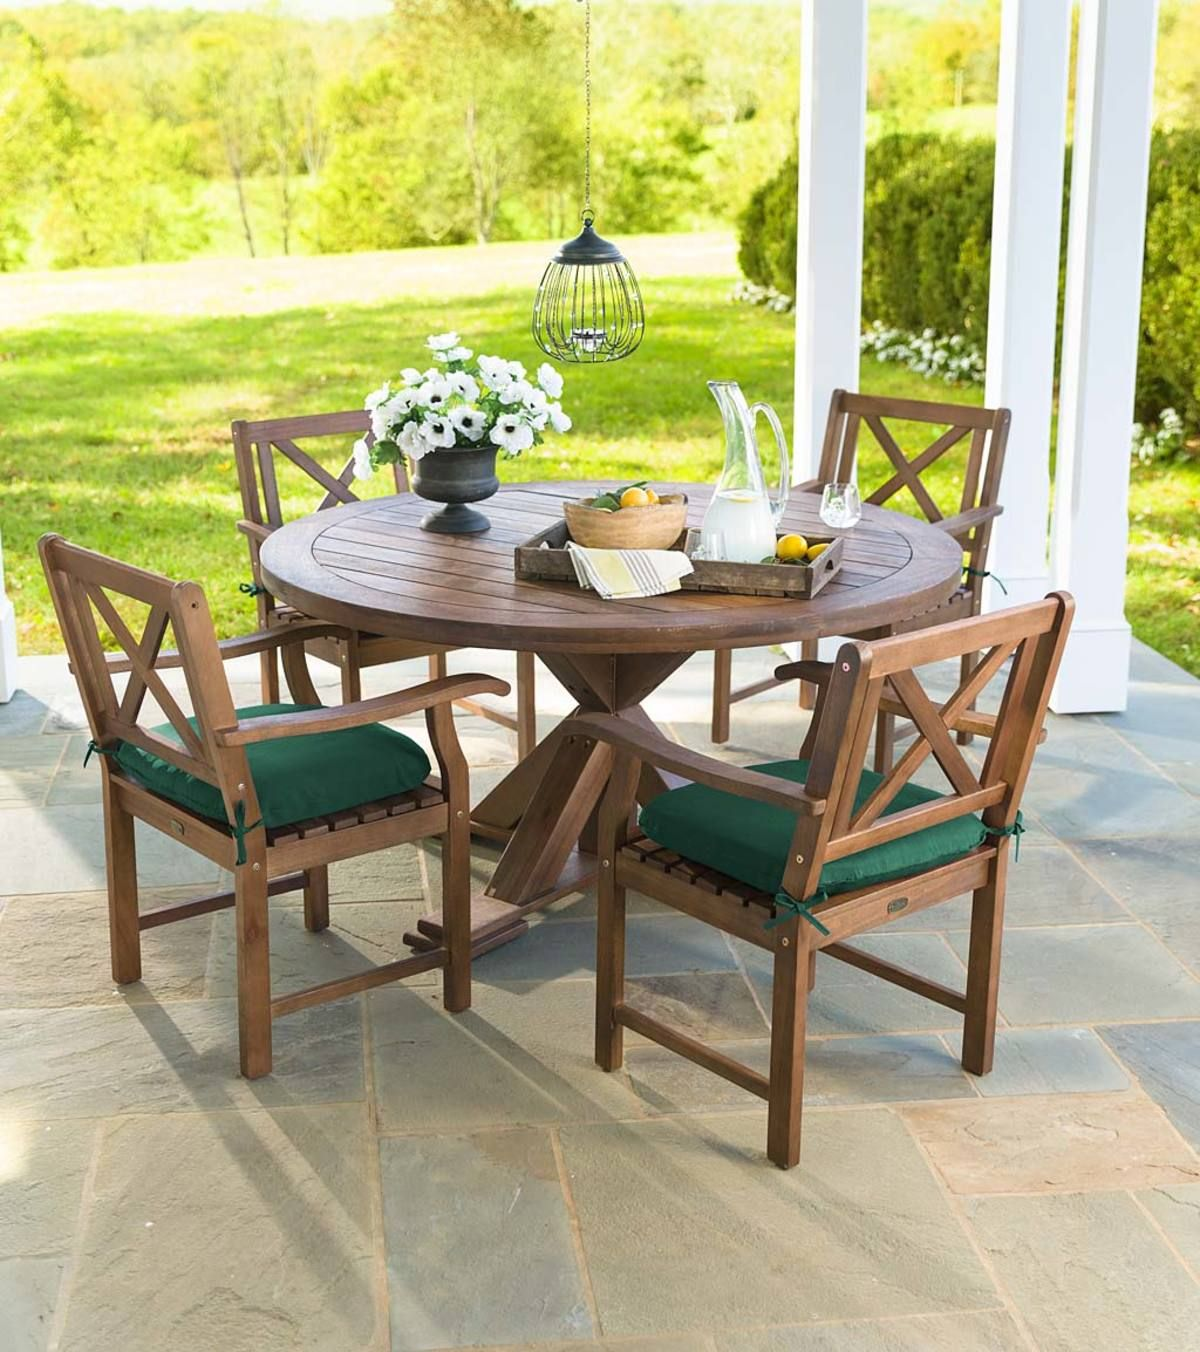 Claremont Eucalyptus Round Dining Table And Chairs In 2020 Round Table And Chairs Round Dining Table Outdoor Dining Spaces